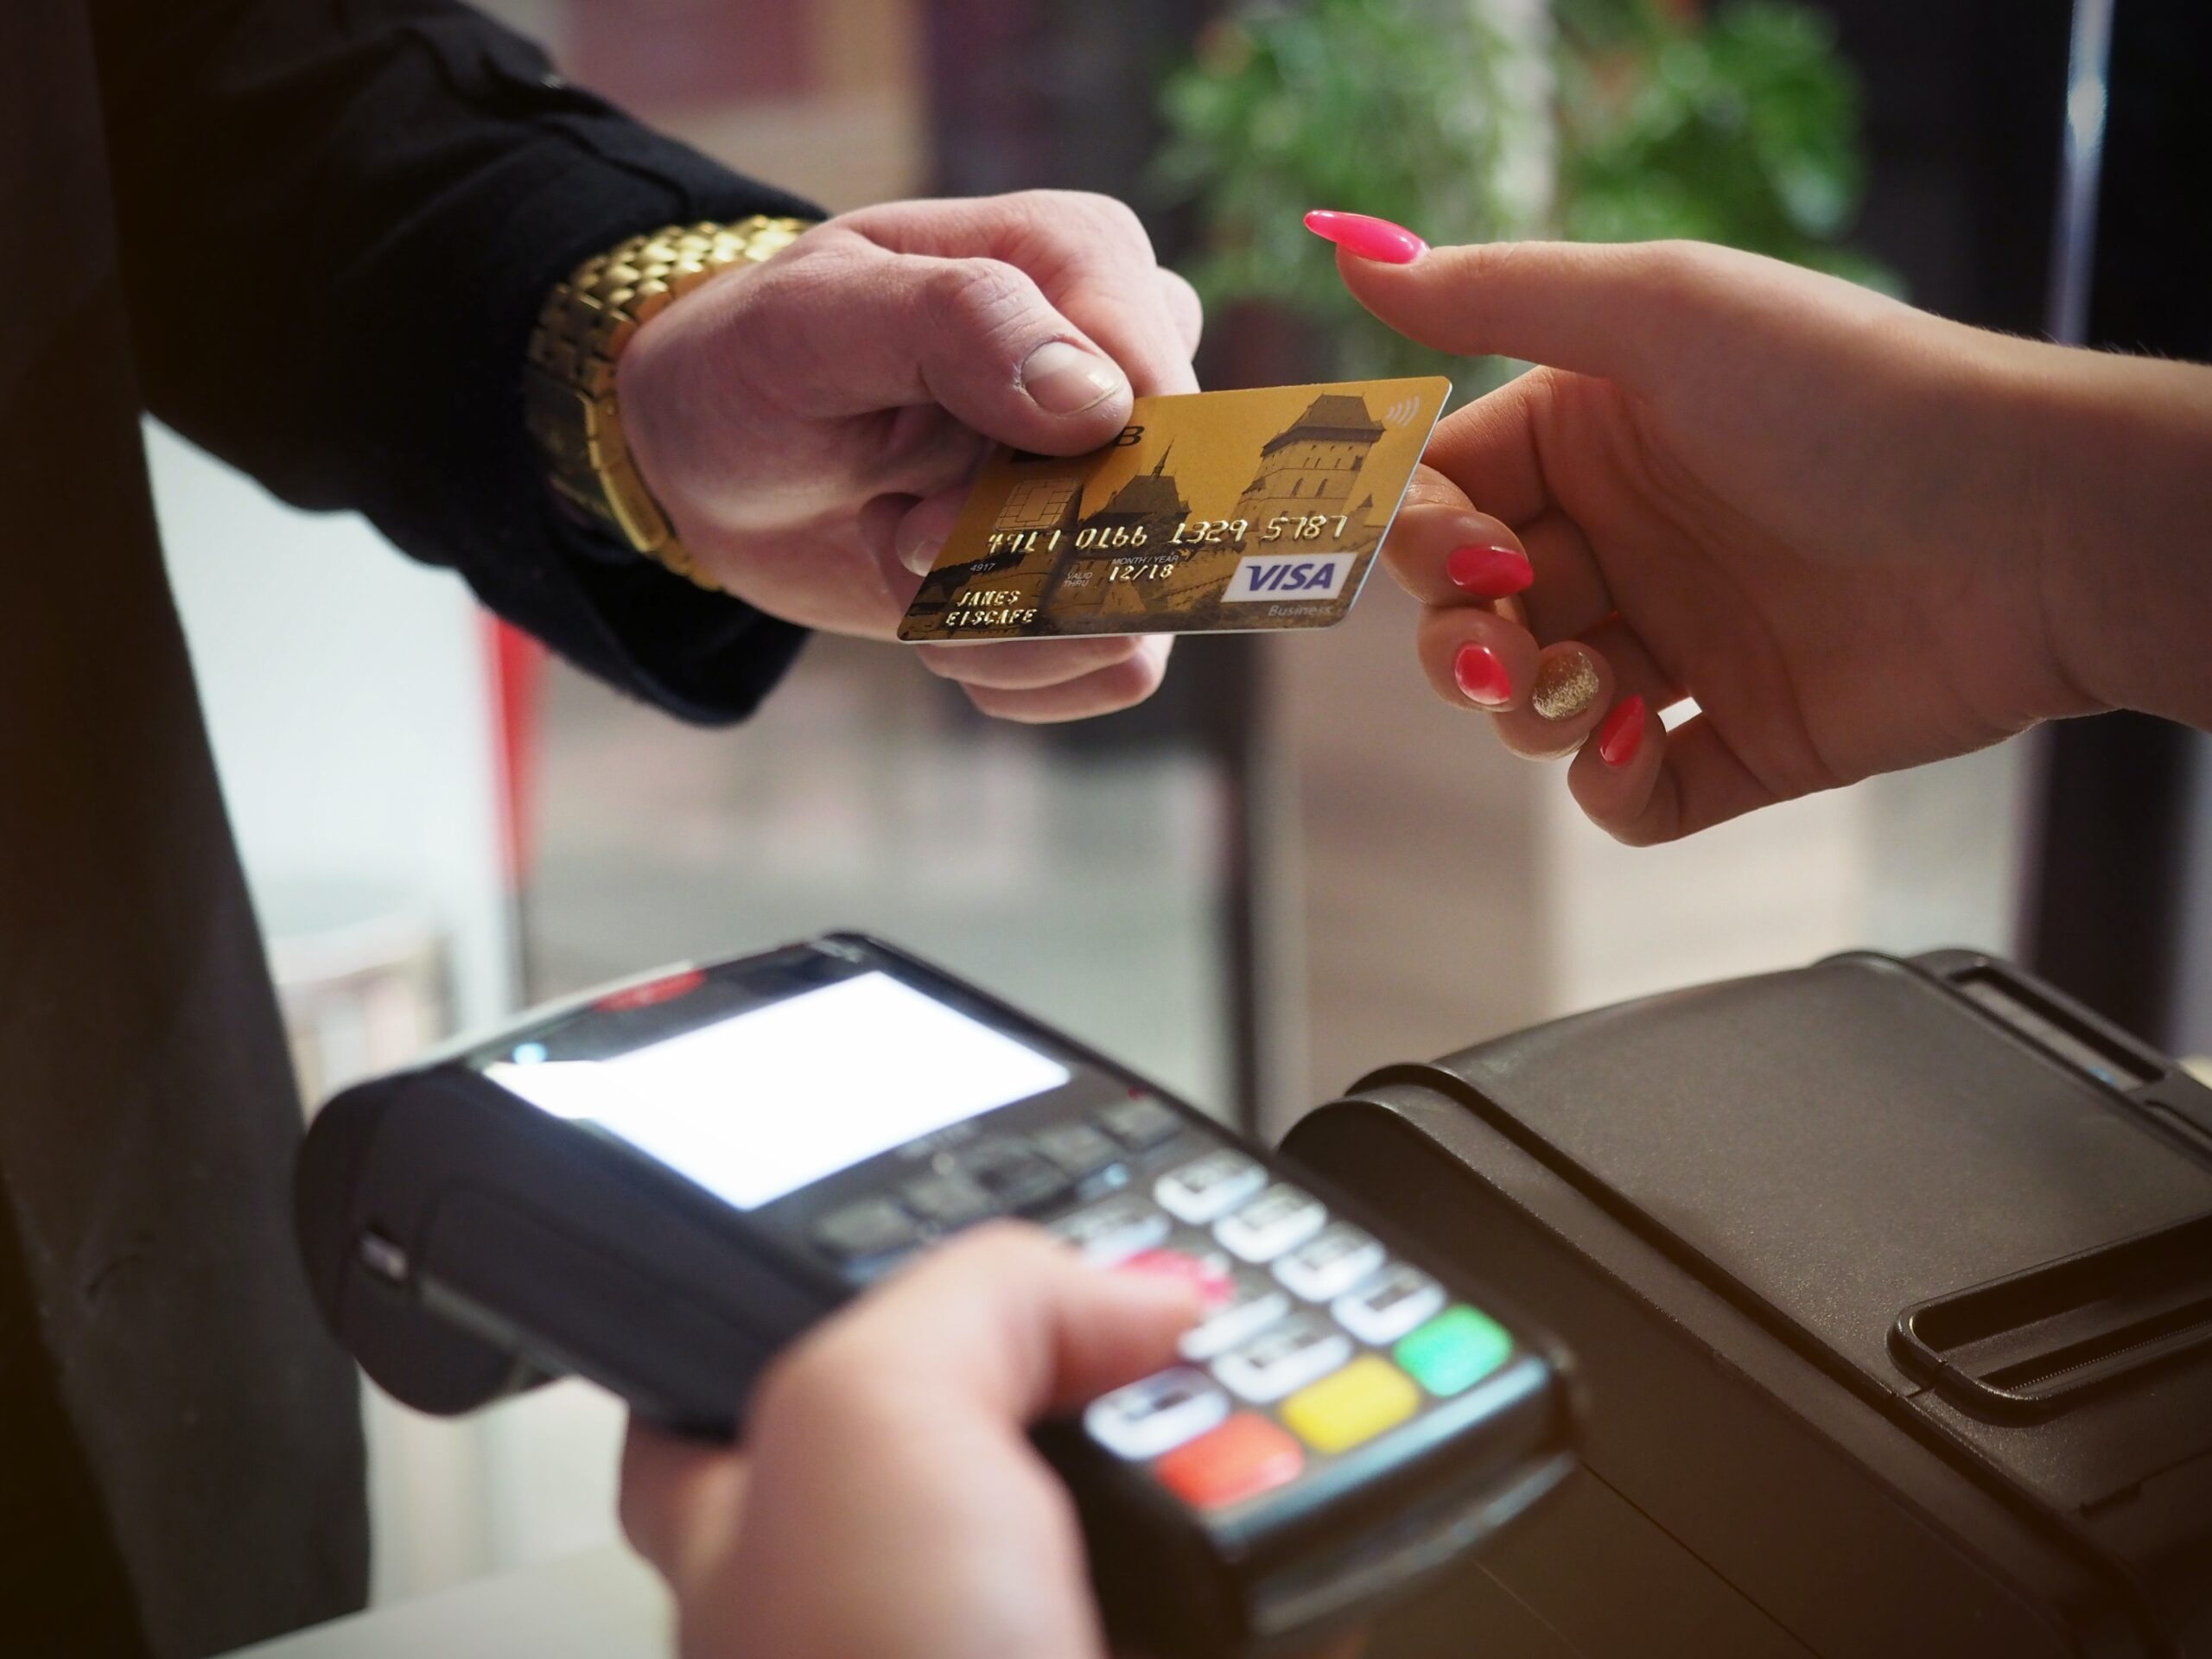 Debit card being used in India for financial or payment purposes, an essential part of the banking system.